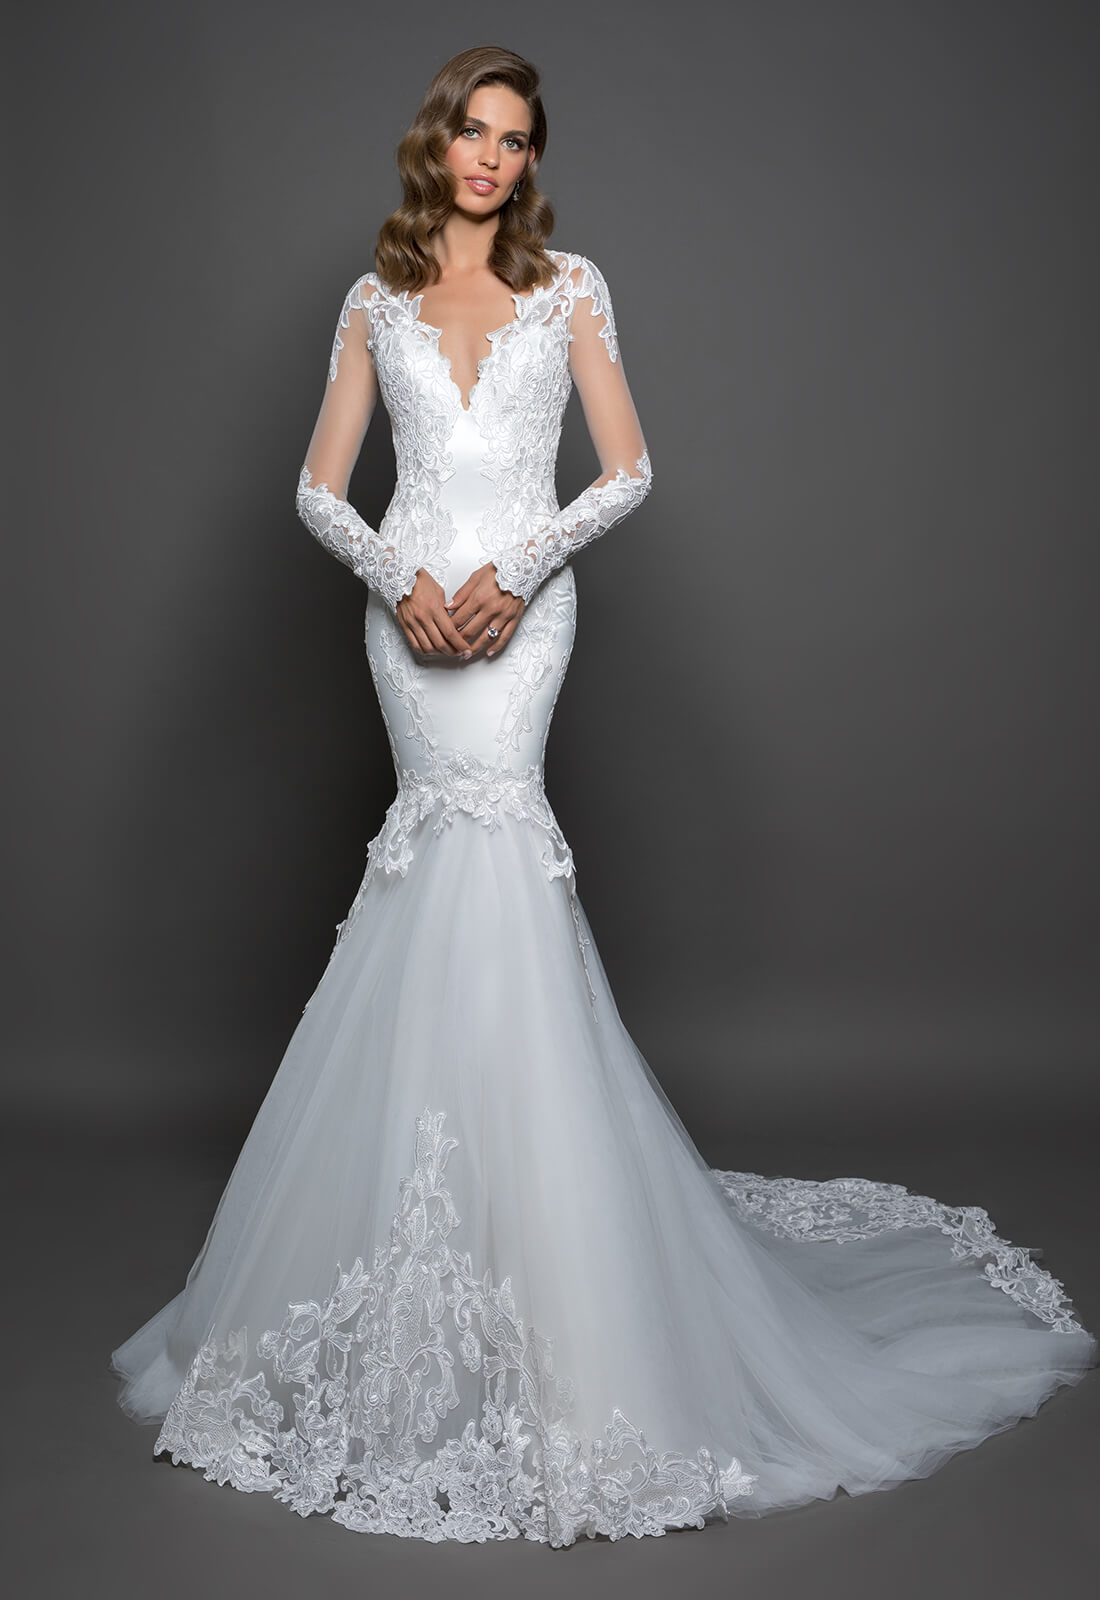 Long Sleeve Mermaid Gown With Lace Detailing